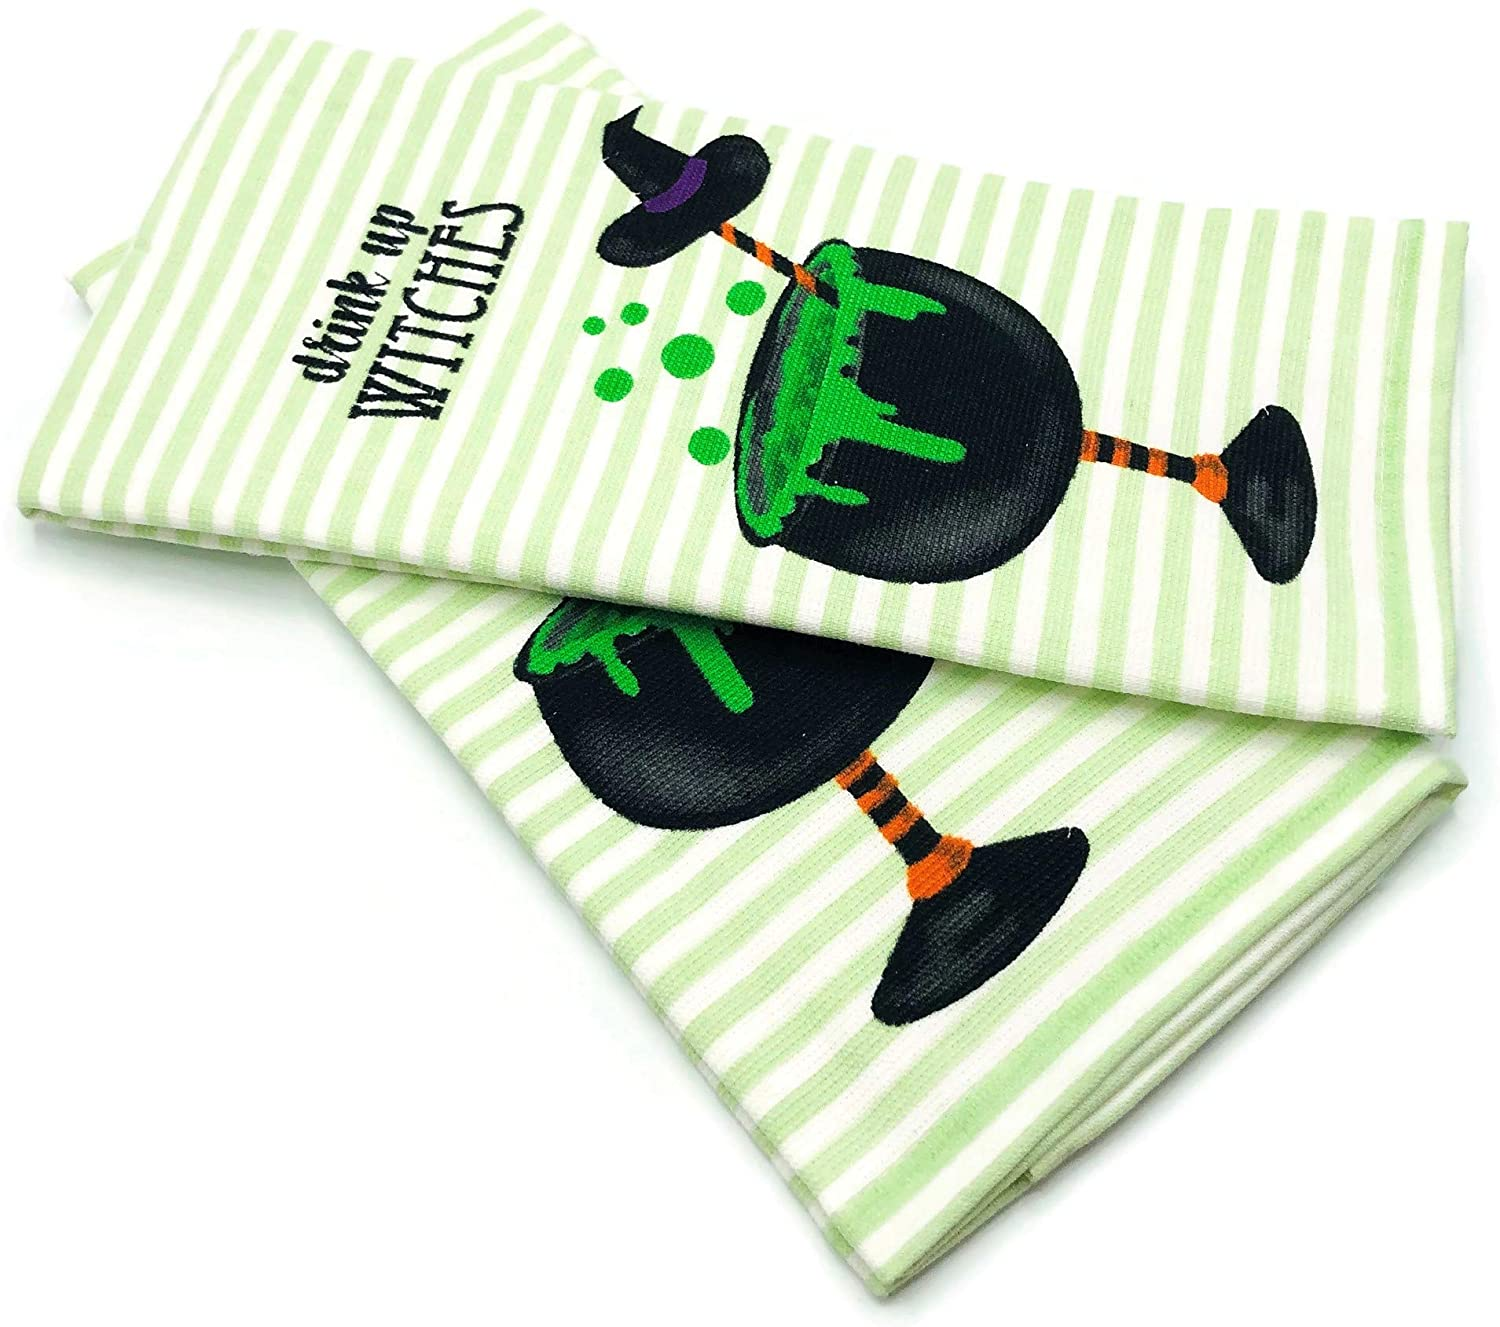 Isaac Mizrahi New York Drink Up Witches Spooky Cocktail Witches Brew Halloween Kitchen Towel Set Soft Cotton Dishtowels